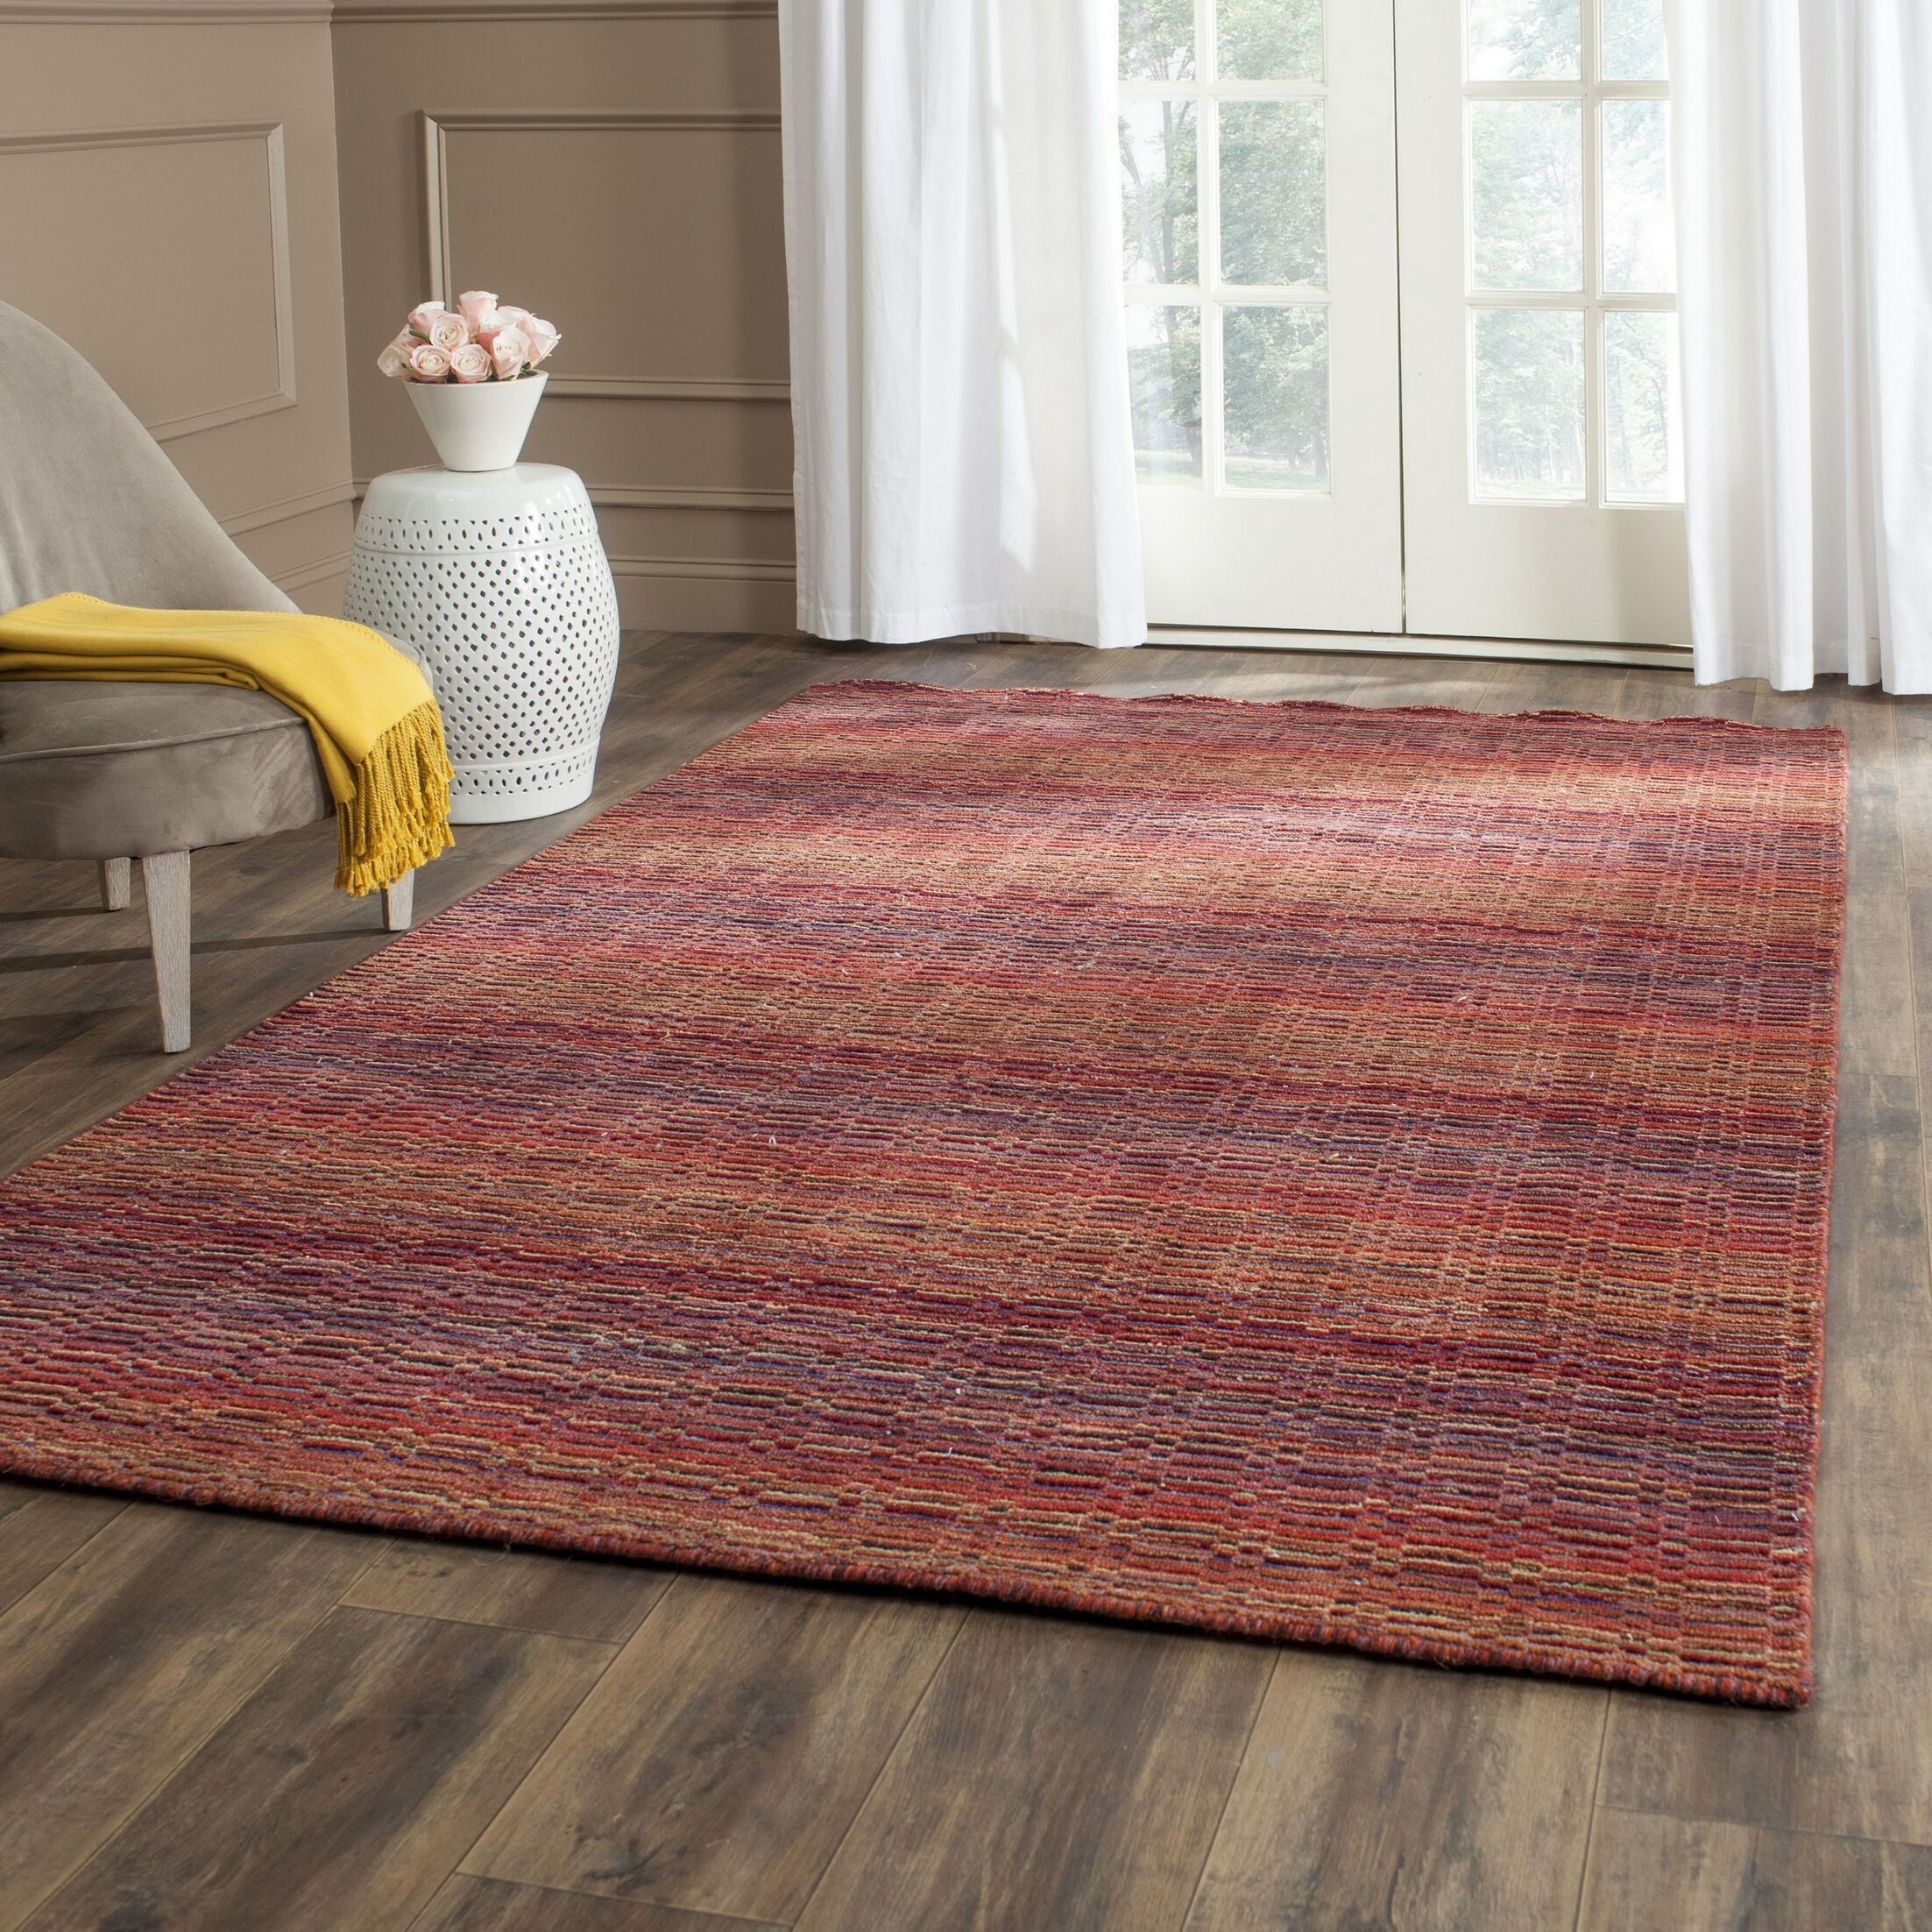 Sherri Red Stripe Area Rug Rug Size: Rectangle 3' x 5'